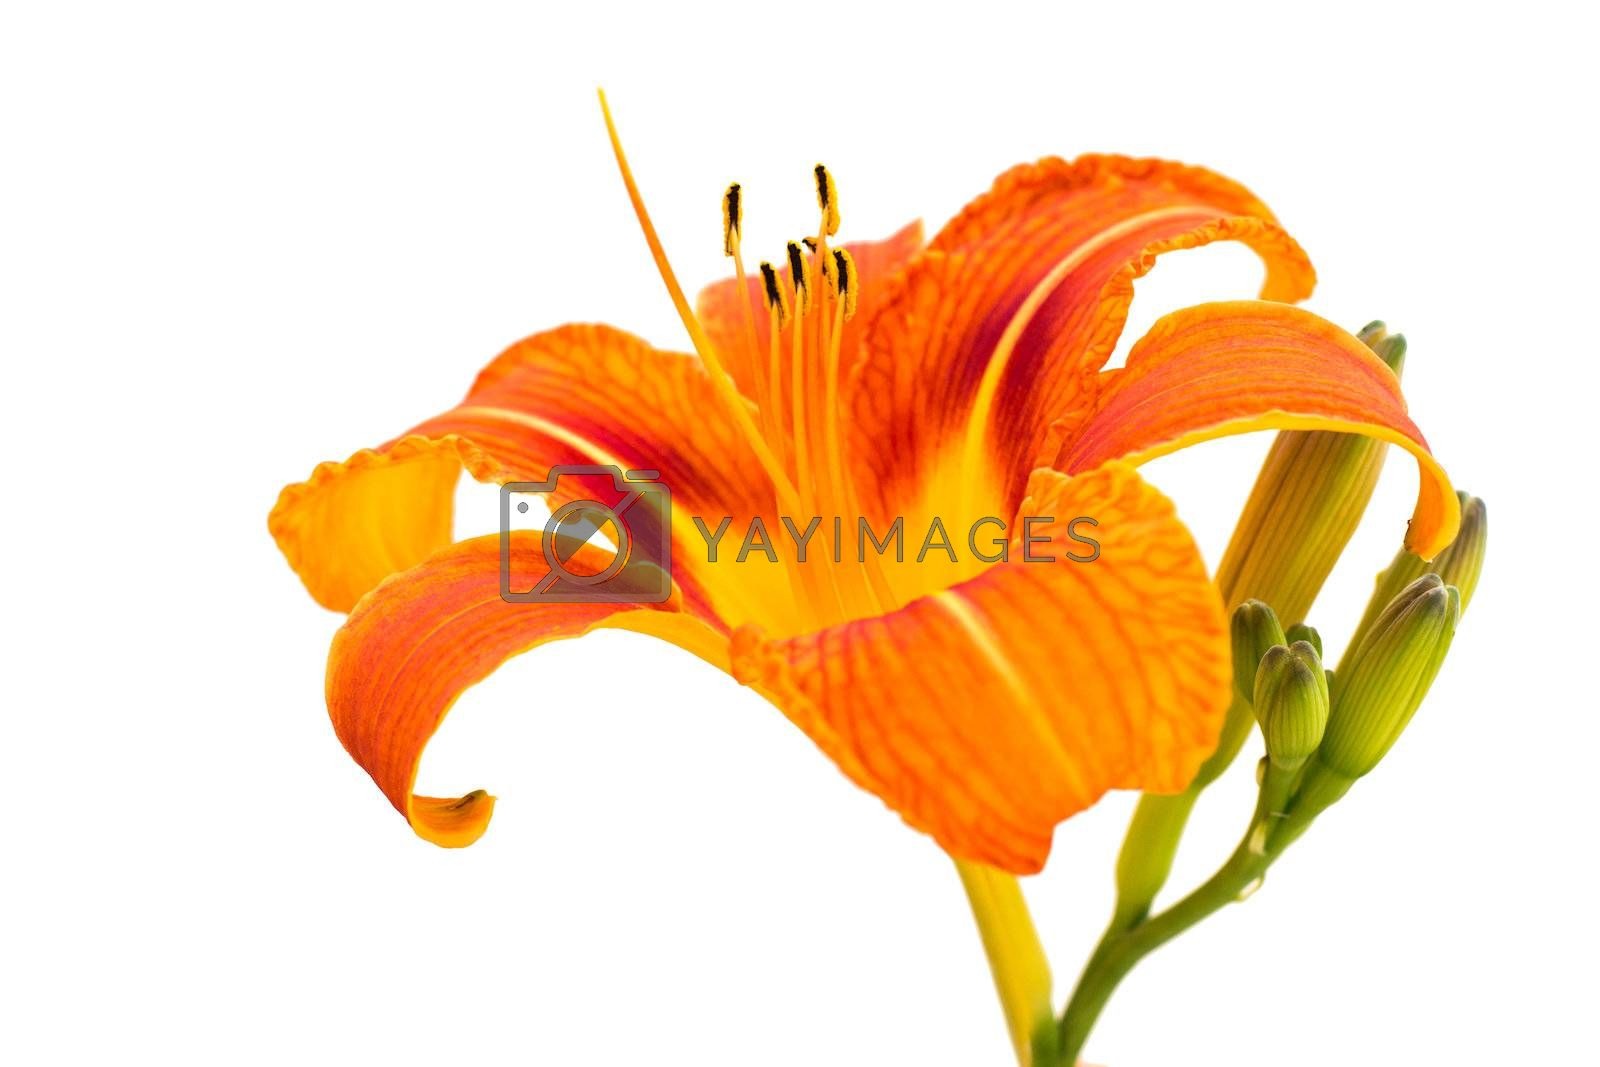 Royalty free image of Lily Flower by Kayco